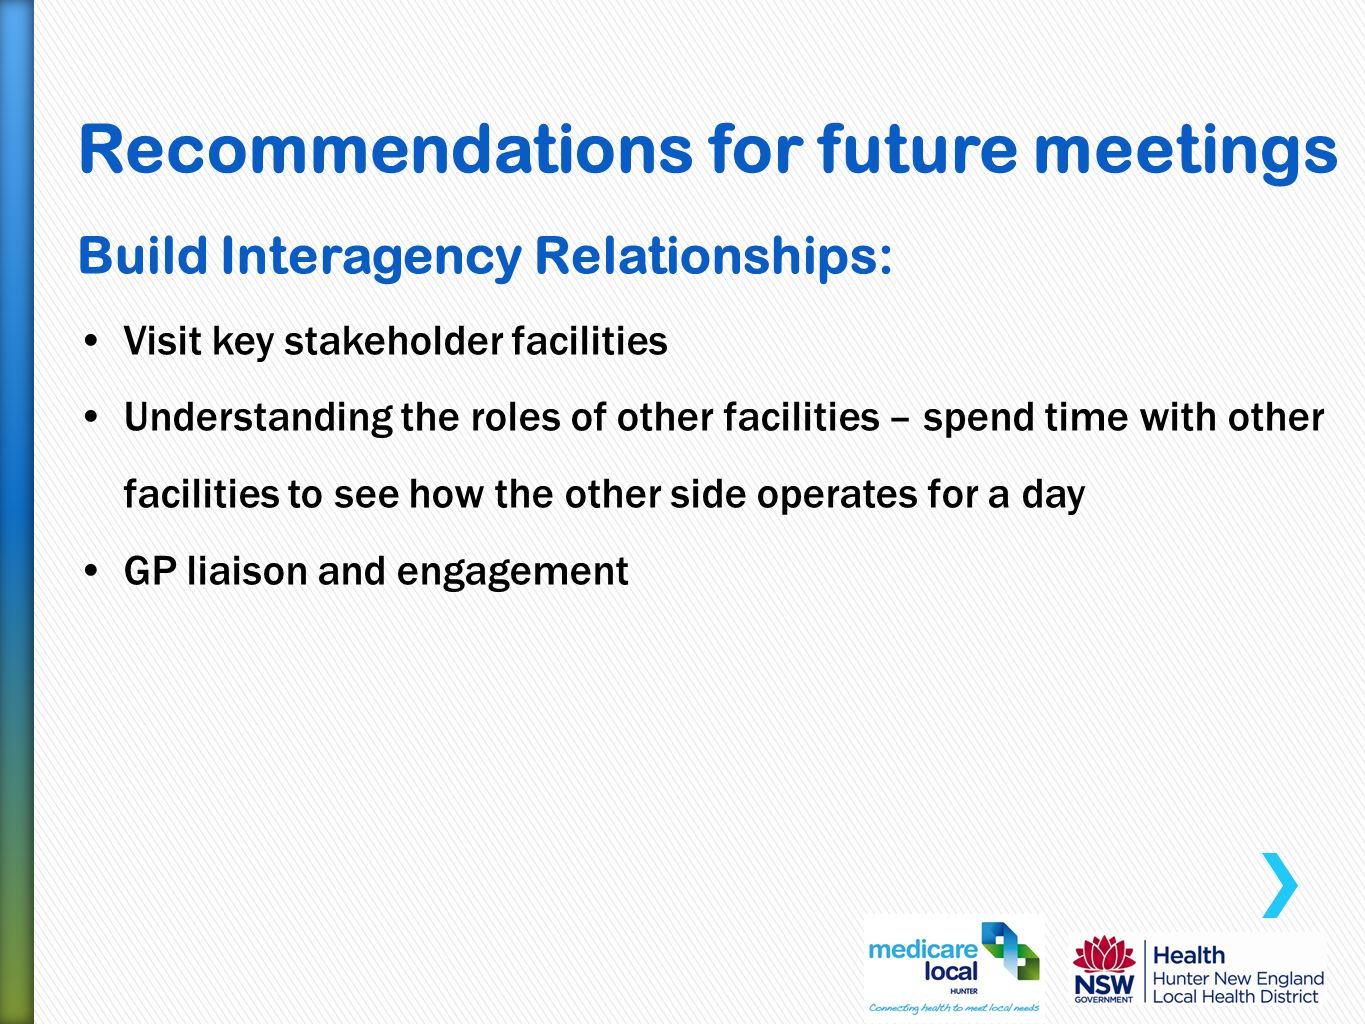 Recommendations for future meetings Build Interagency Relationships: Visit key stakeholder facilities Understanding the roles of other facilities – spend time with other facilities to see how the other side operates for a day GP liaison and engagement